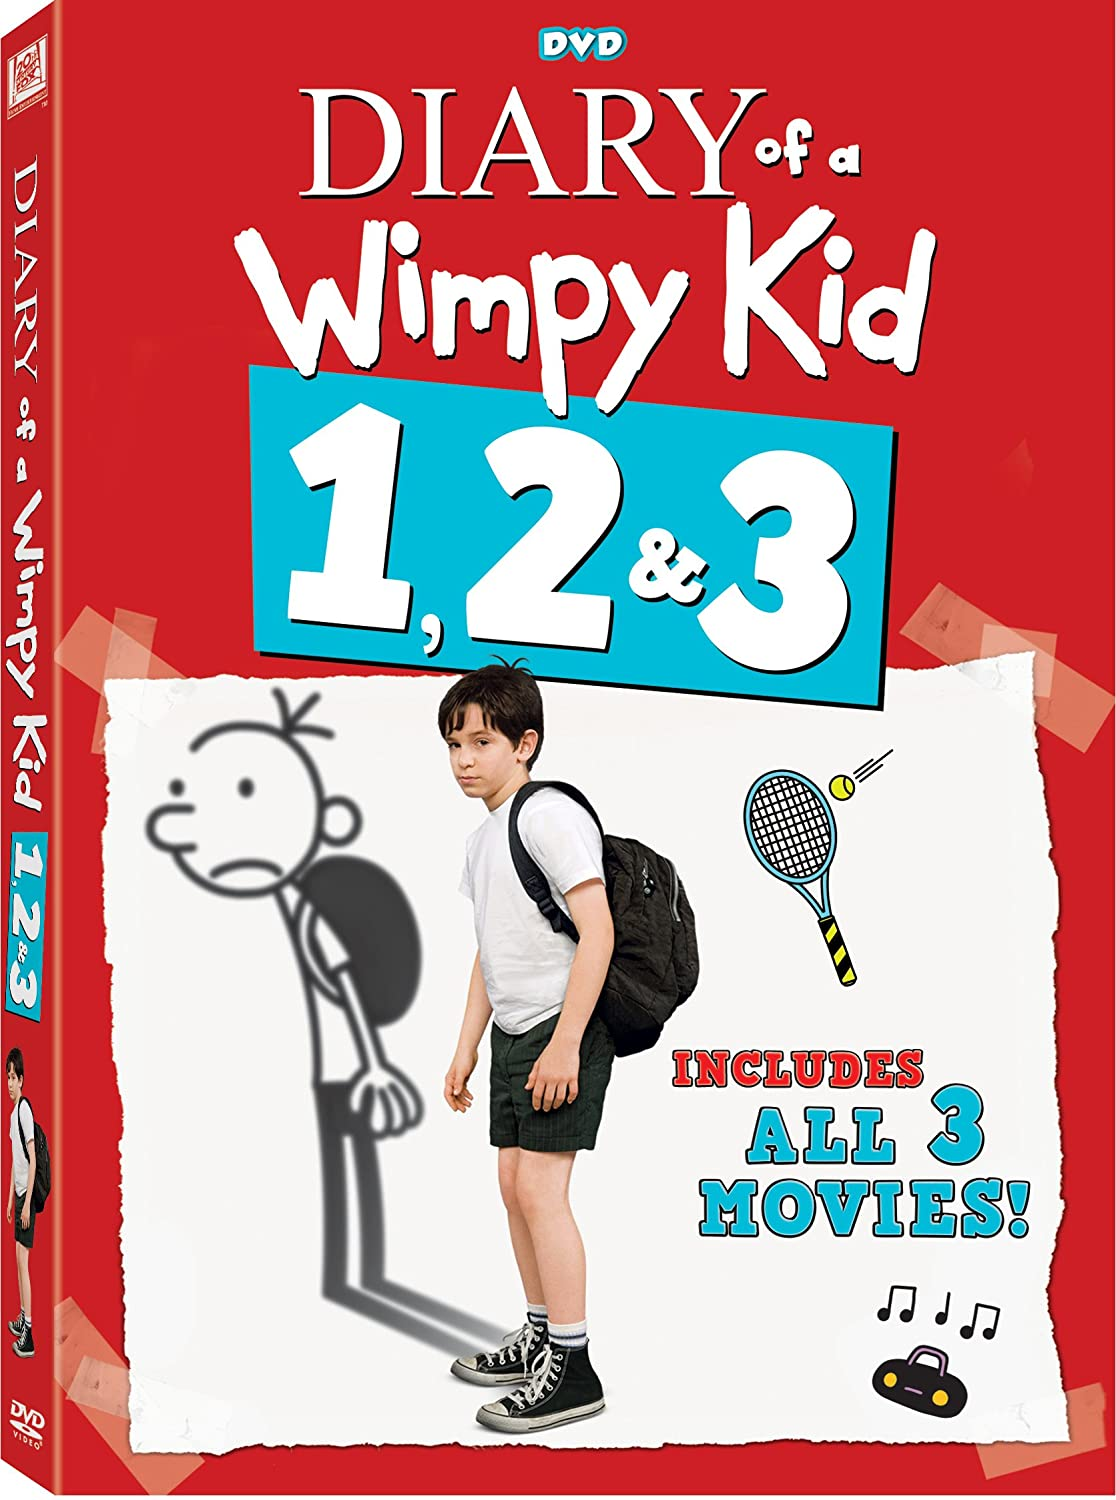 The Wimpy Kid Movie Diary Diary of a Wimpy Kid